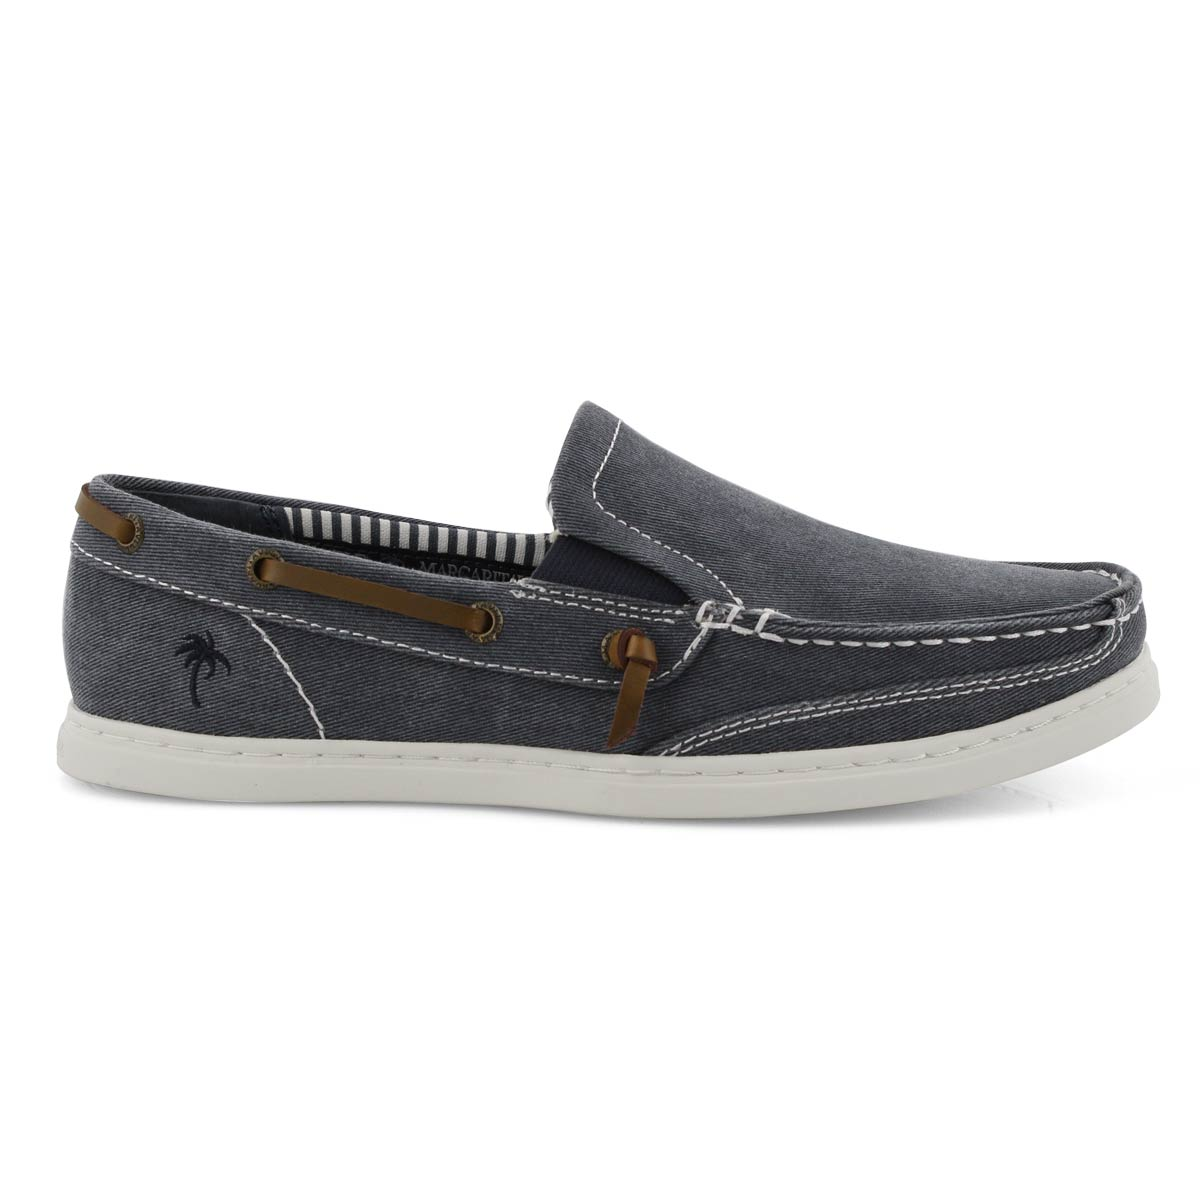 Mns Dock Twill navy casual slip on